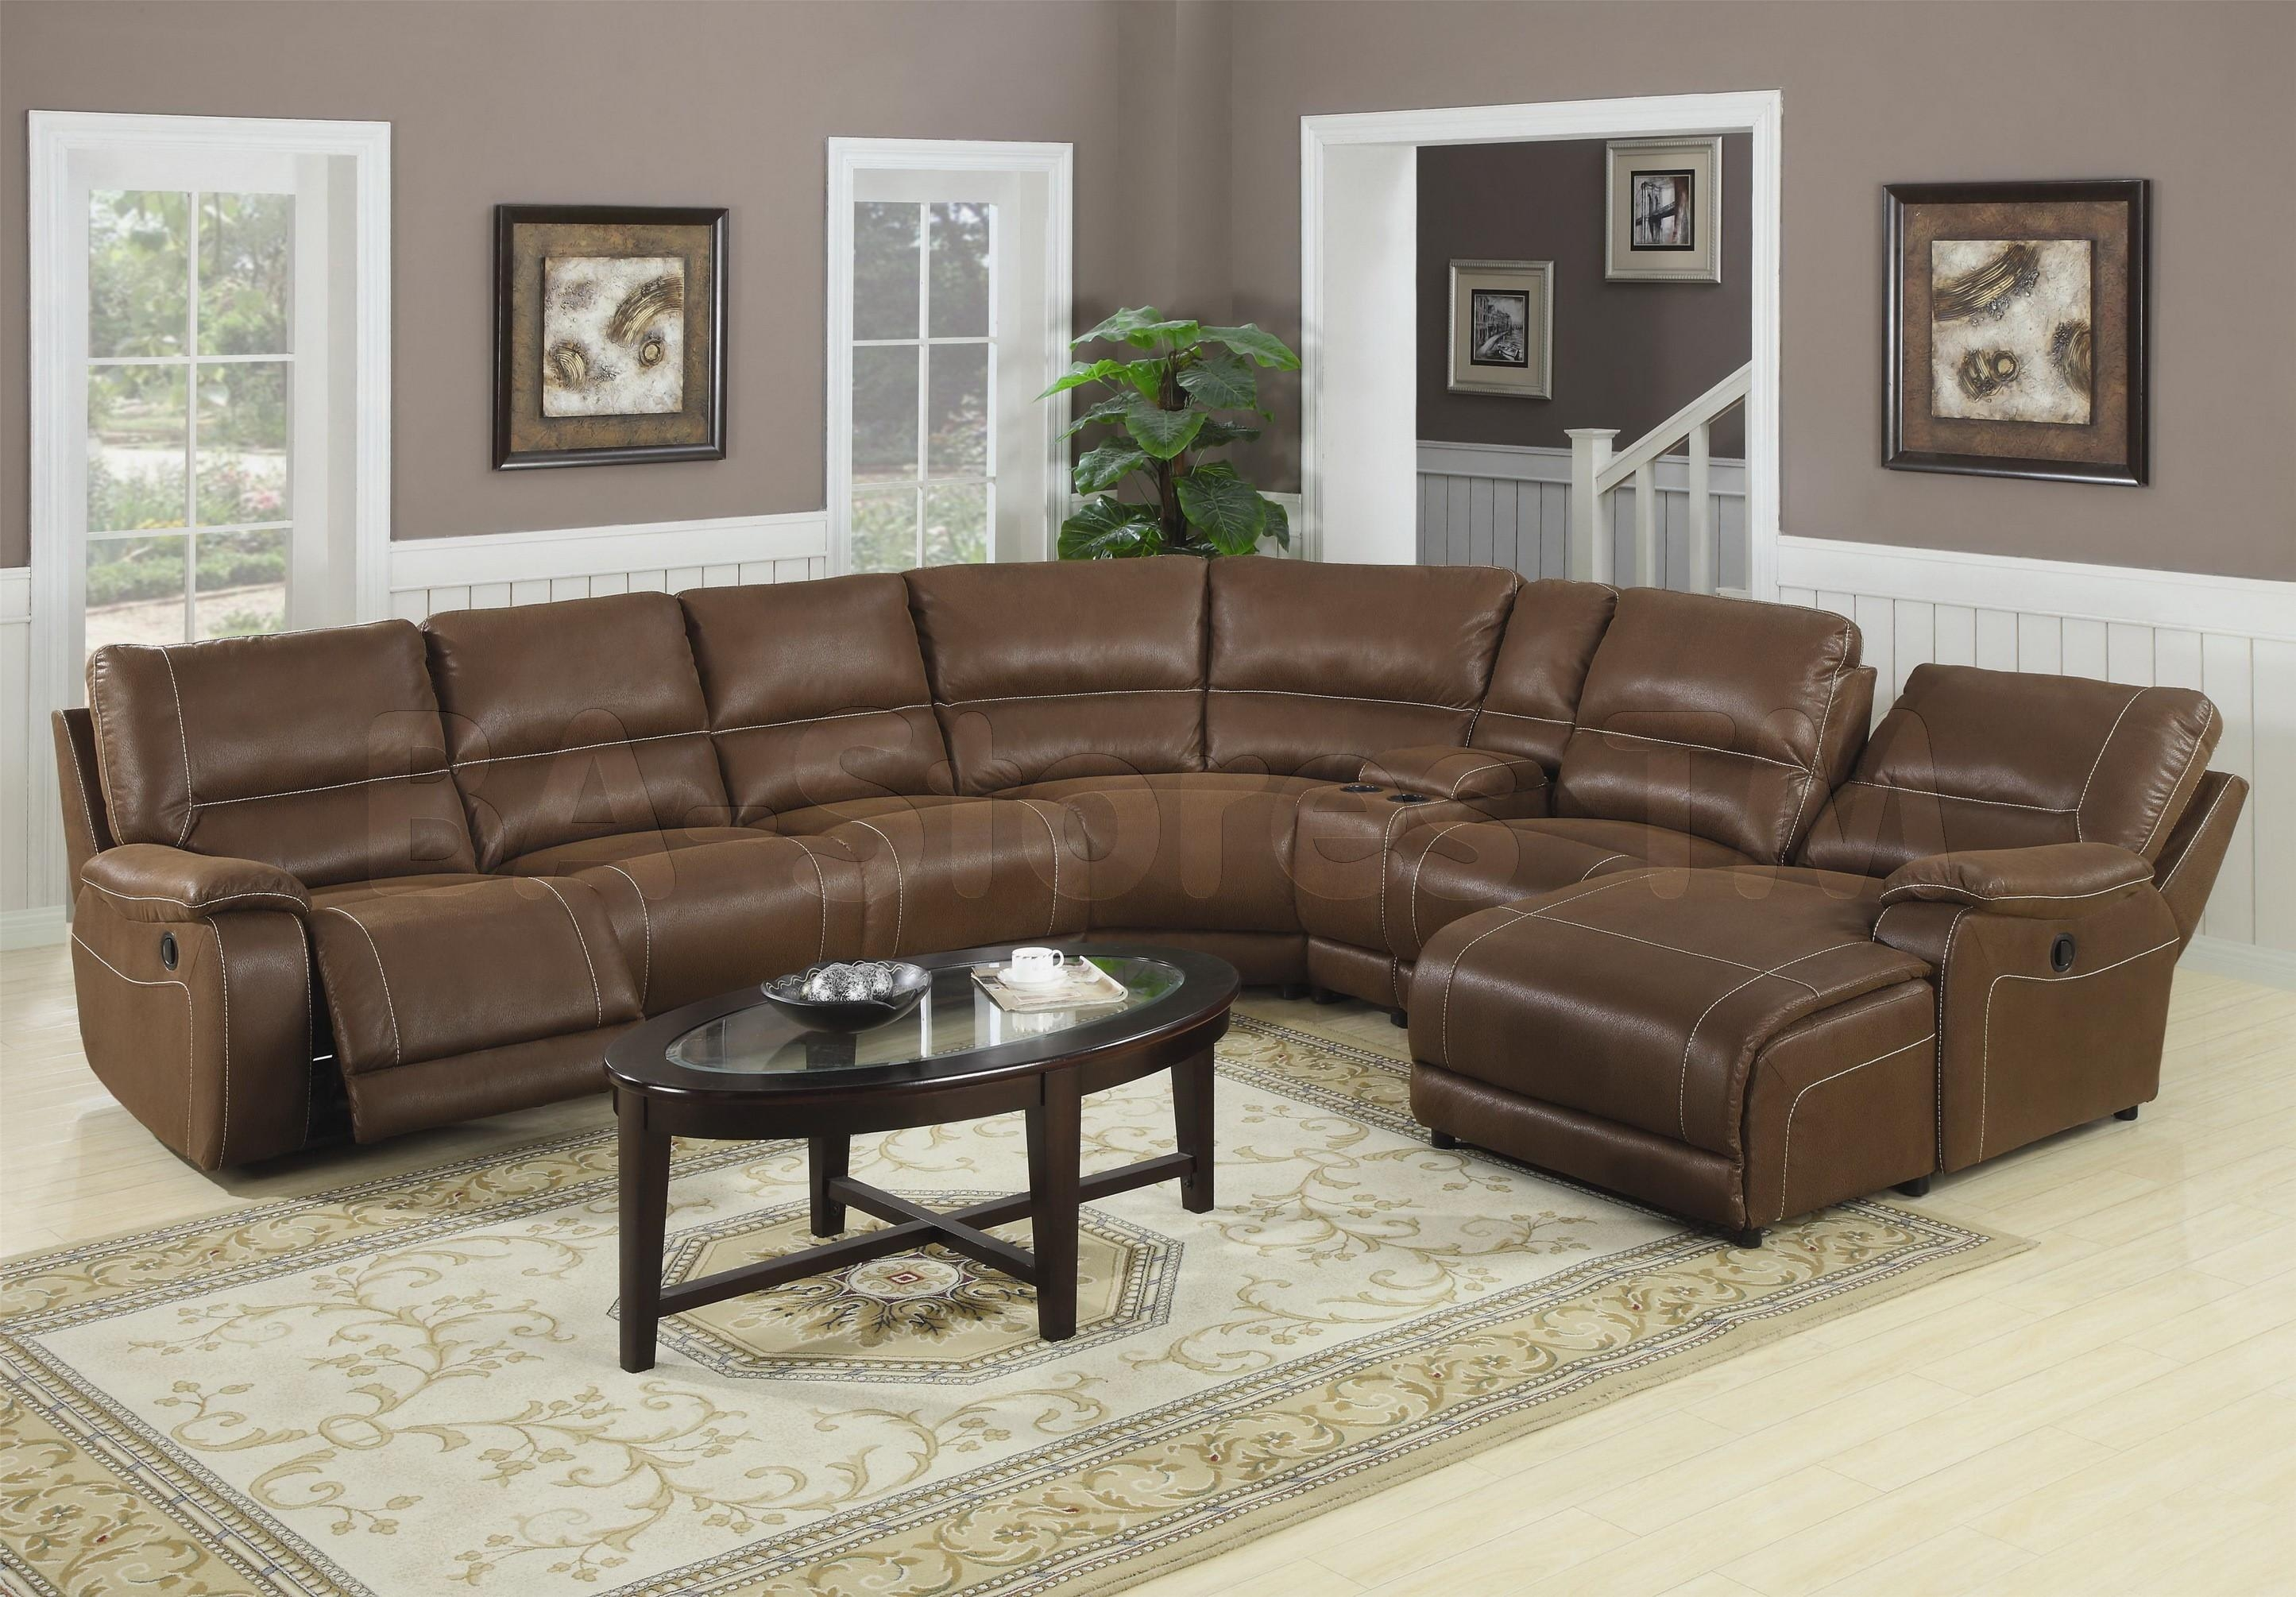 Sofas Center : Amazing Used Sectional Sofas Images Concept Off L With Used Sectionals (Image 13 of 20)